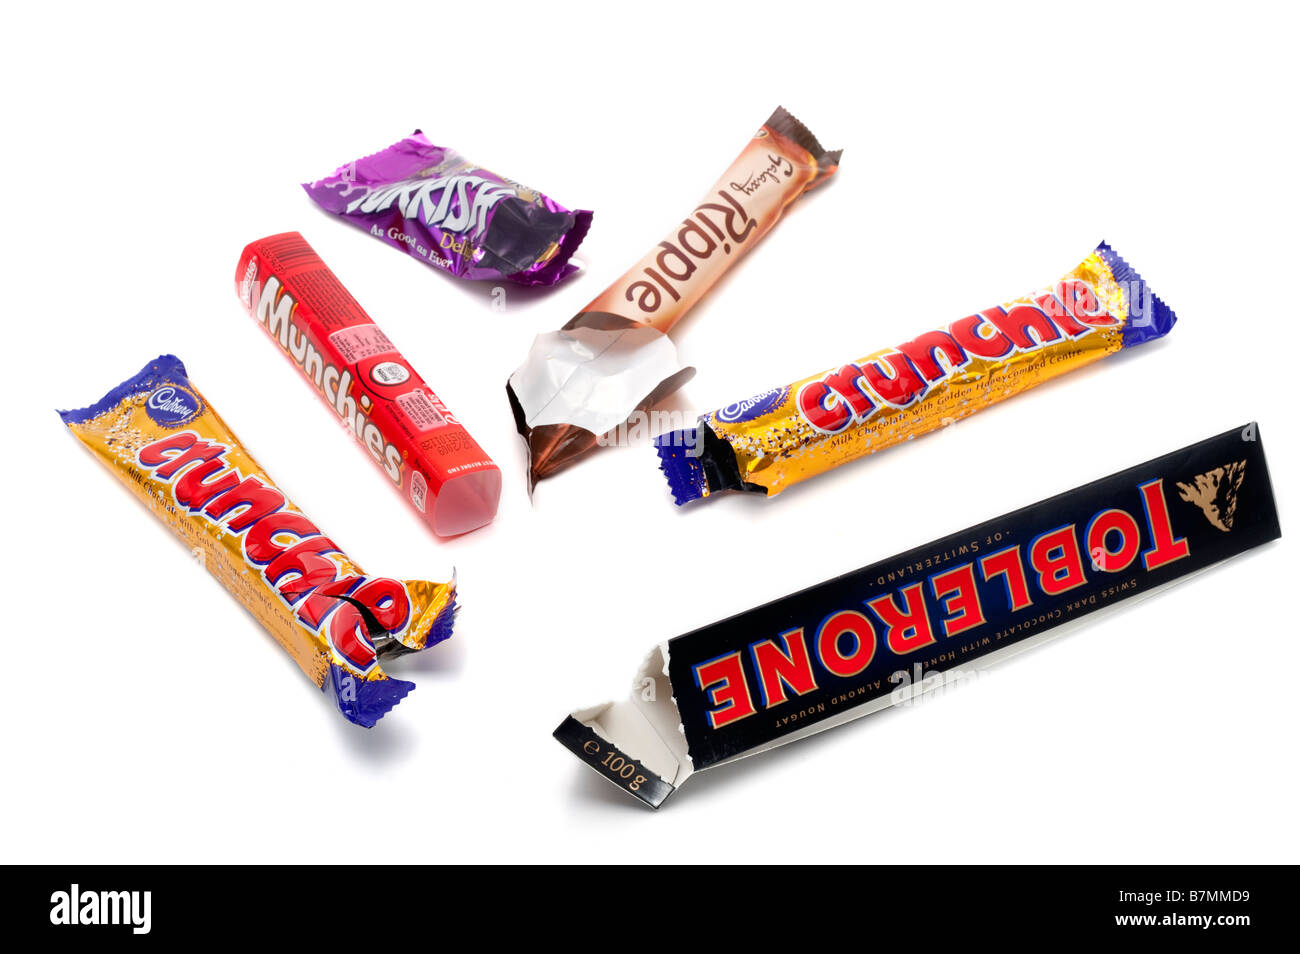 choc wrappers